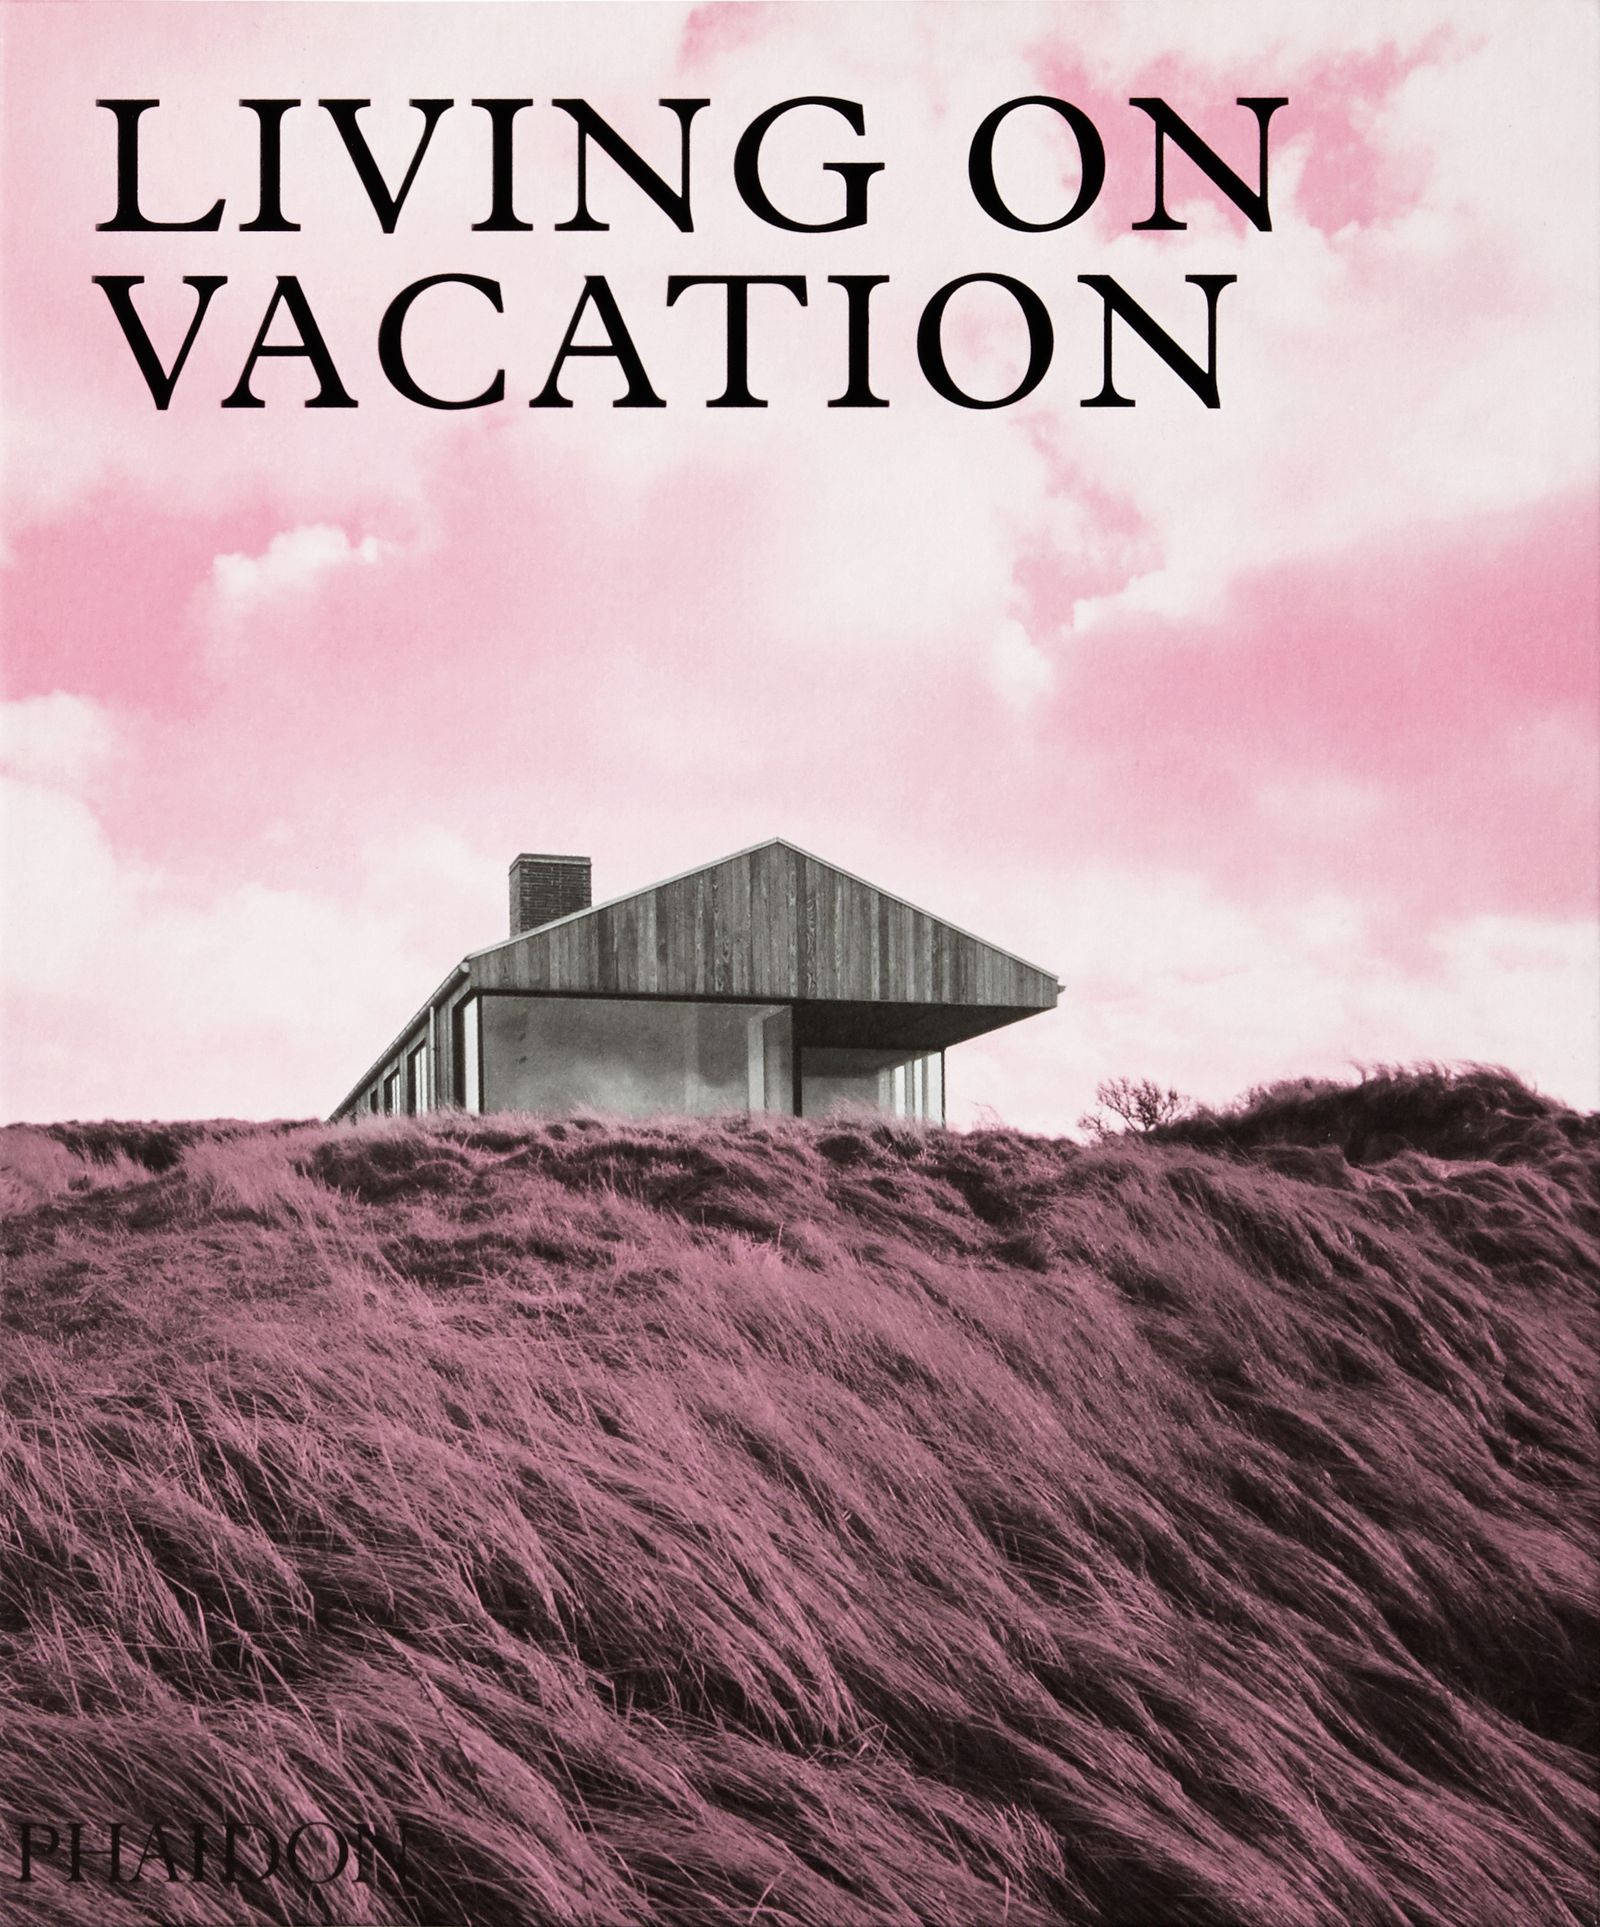 Buch/ Living on Vacation COVER